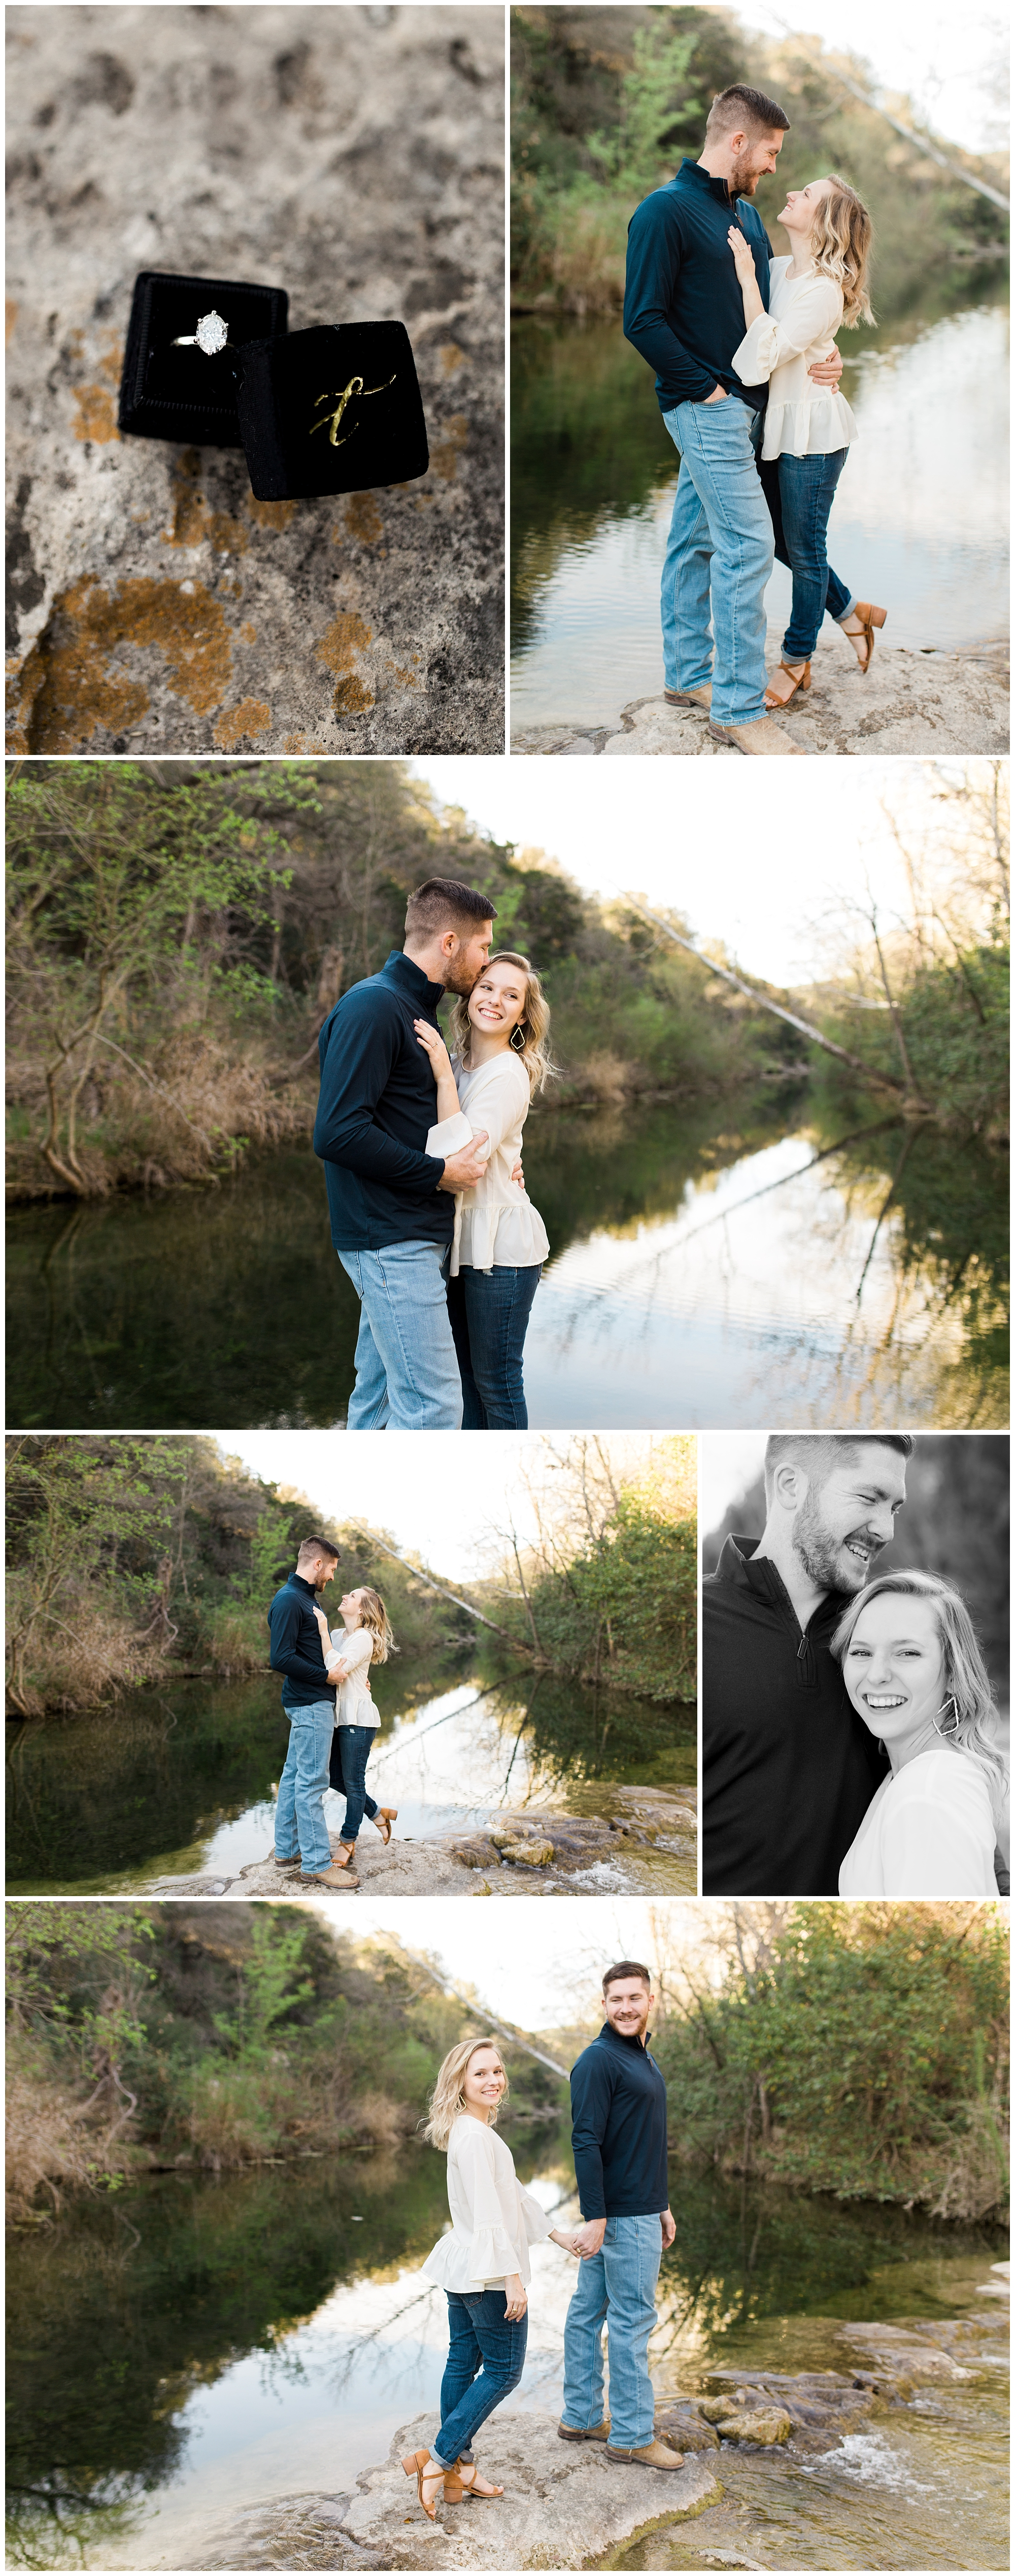 Bull_Creek_Engagement_Session_0002.jpg